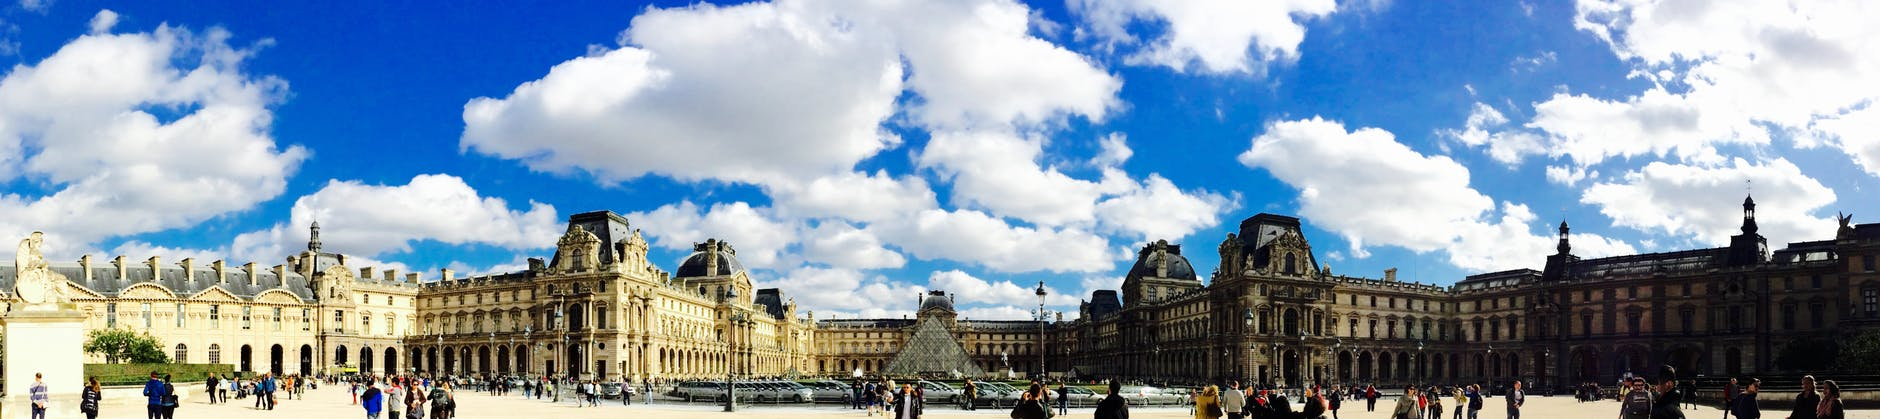 paris blue sky panorama cityscape